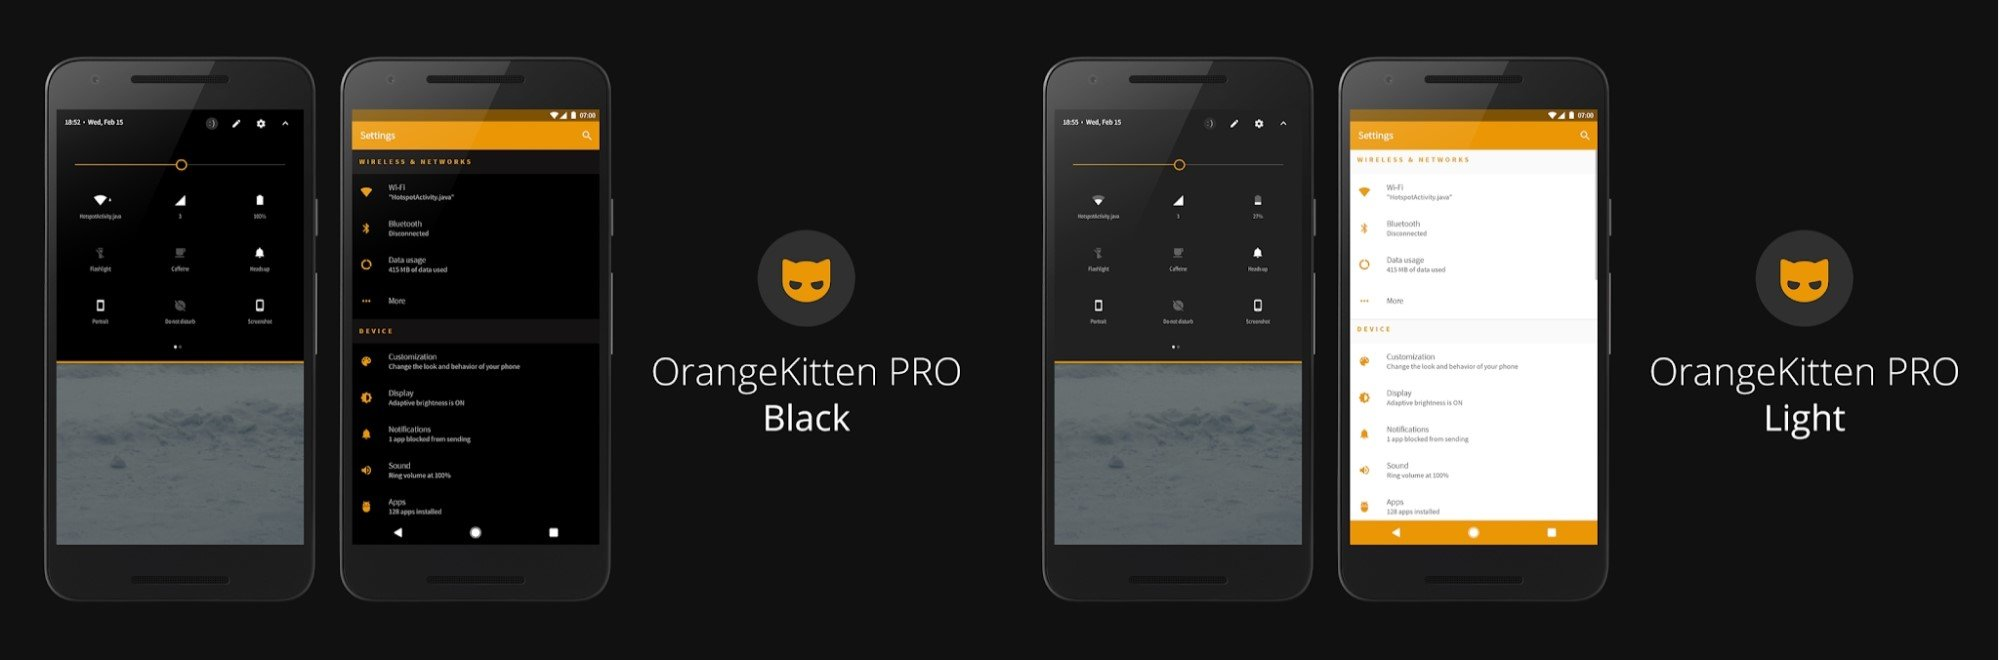 10 Best Substratum Themes Orange Kitten